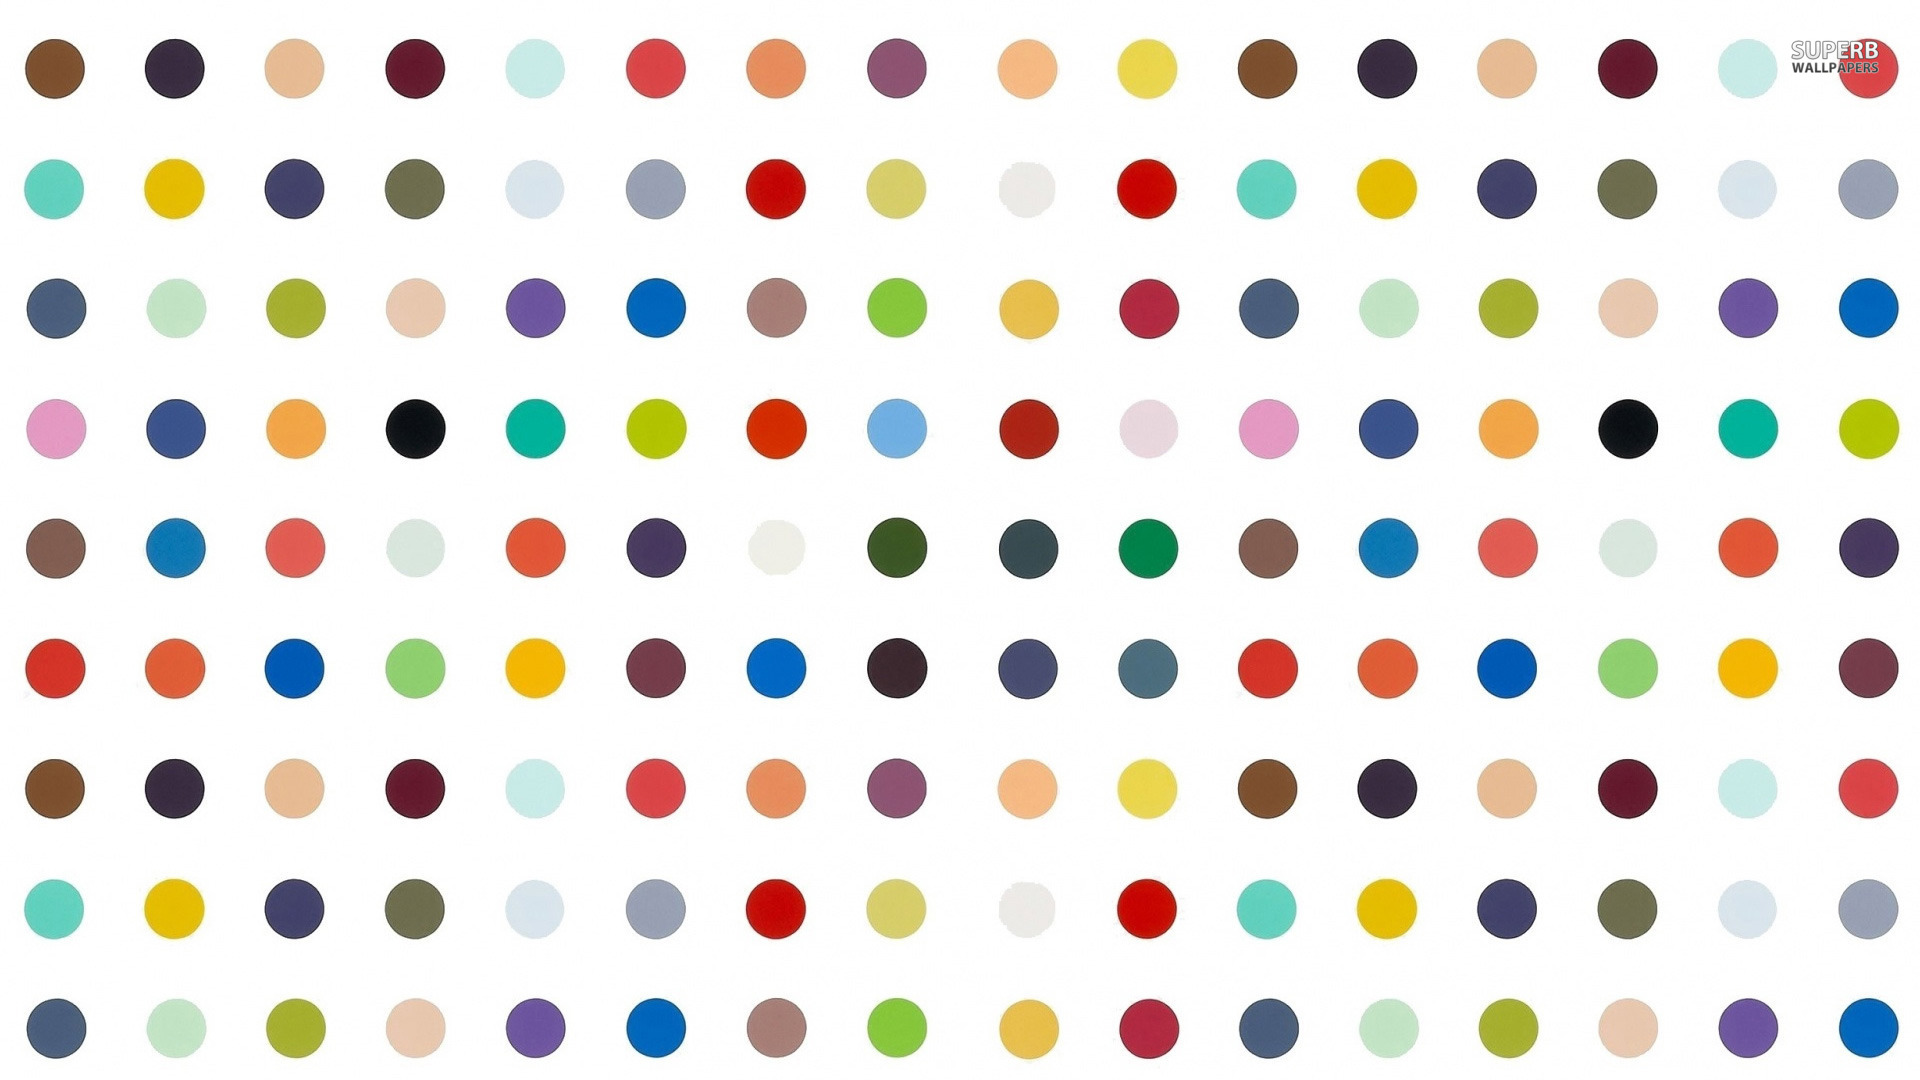 Colorful polka dots wallpaper 1920x1080